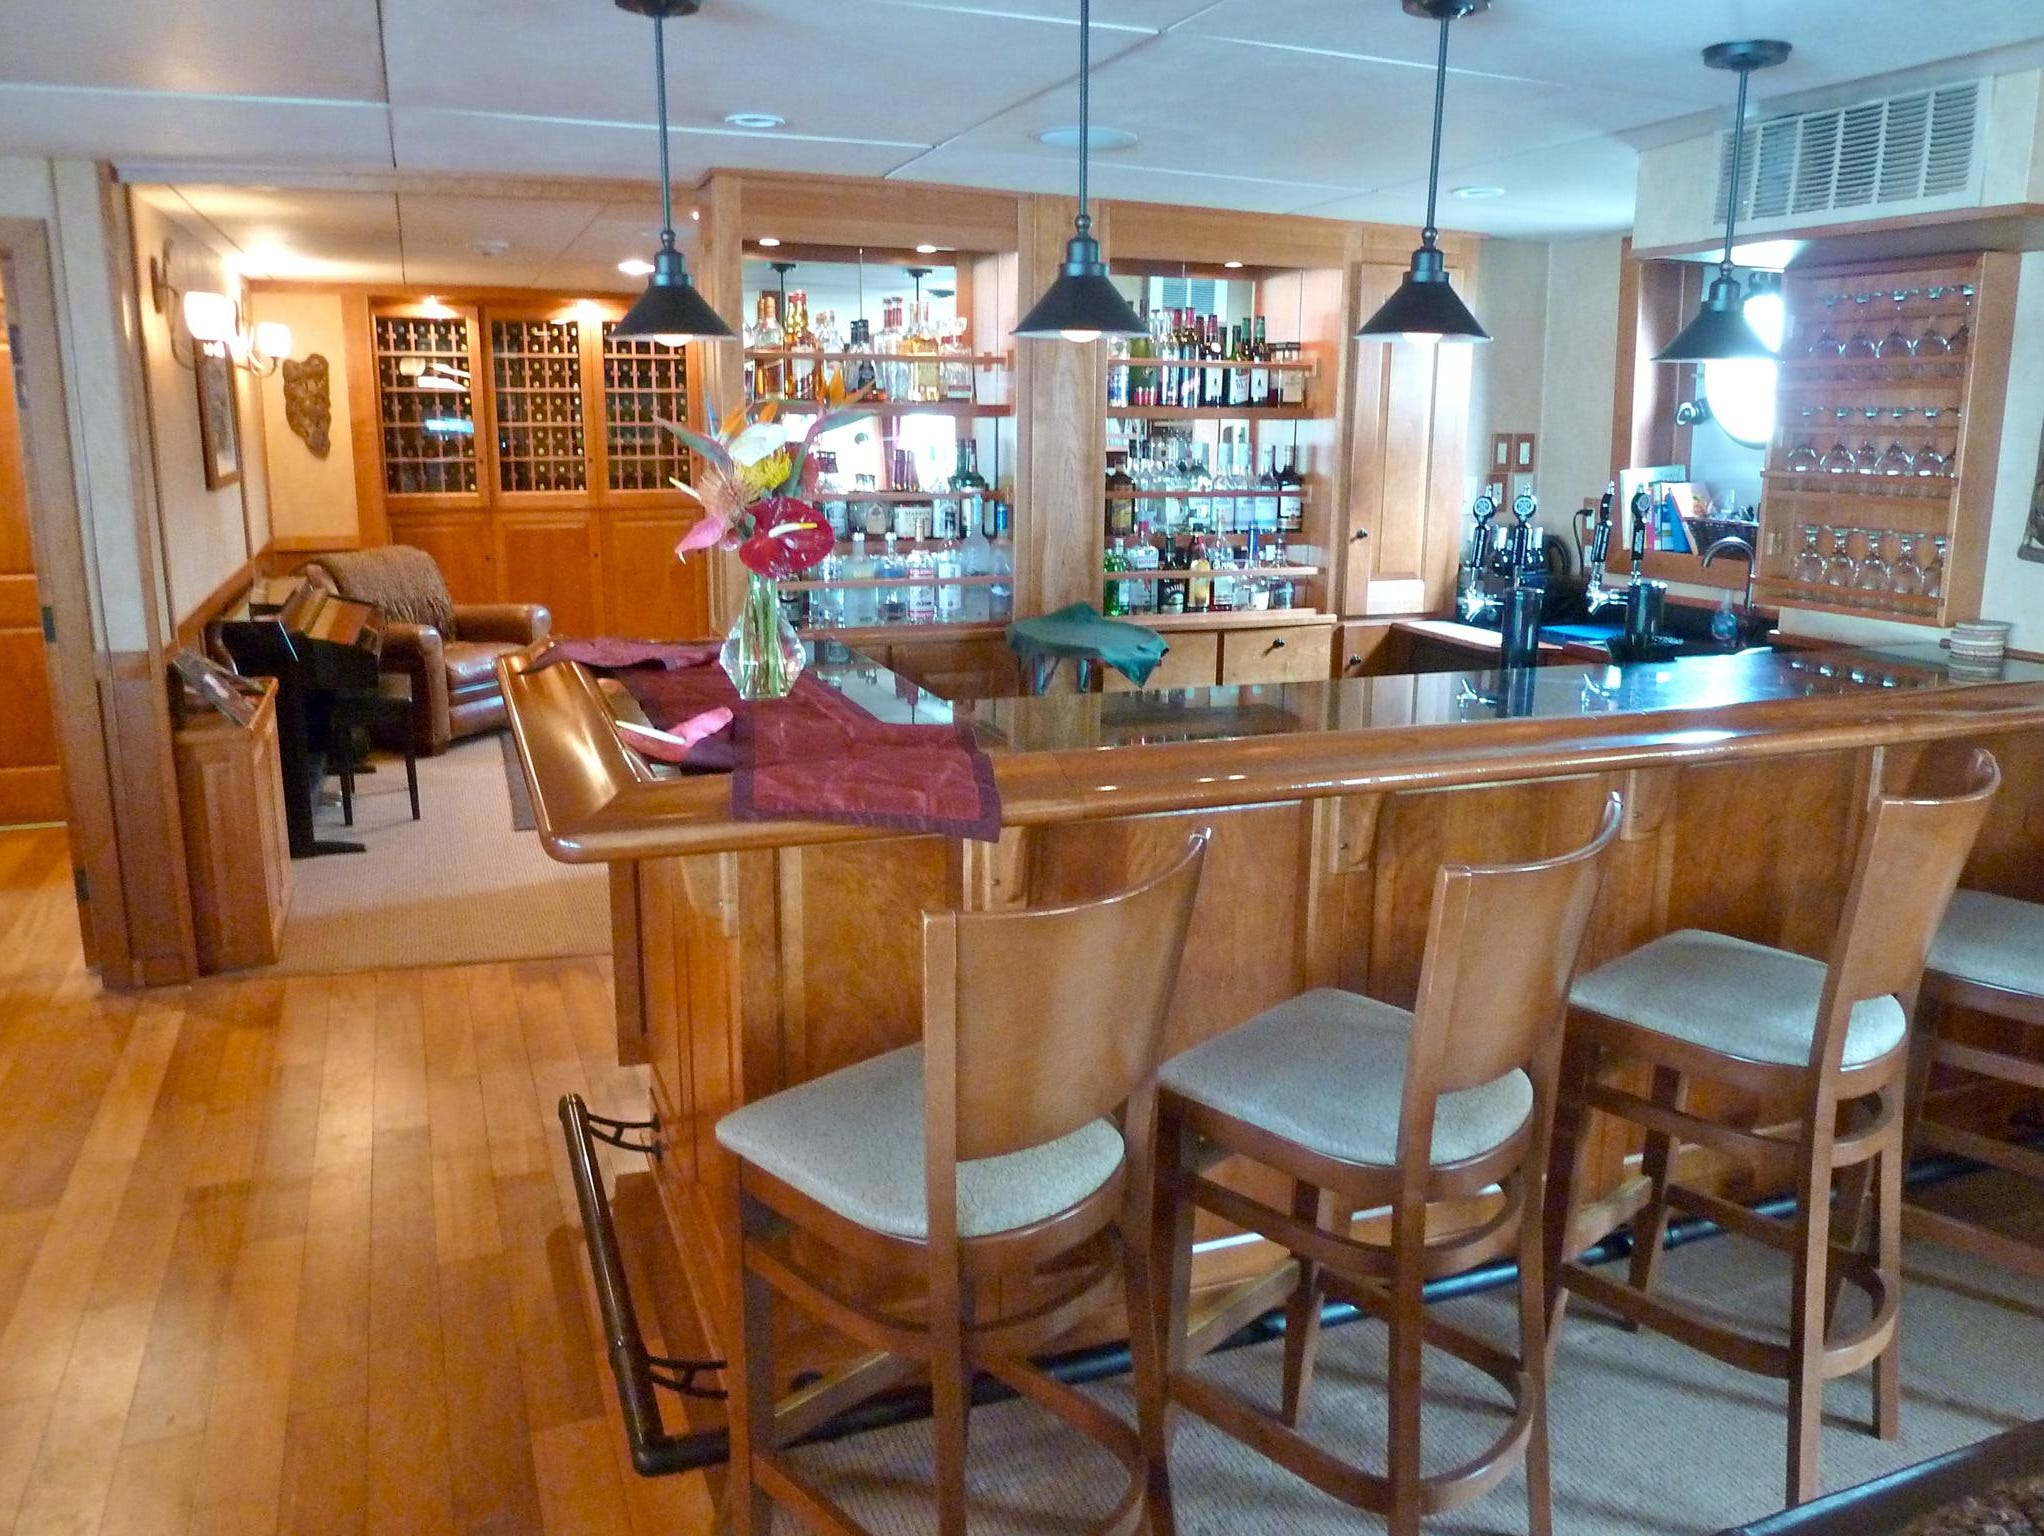 The bar is stocked with top-shelf liquors and soft drinks as well as on-tap beers. Should a bartender not be available, guests have full access to serve themselves.